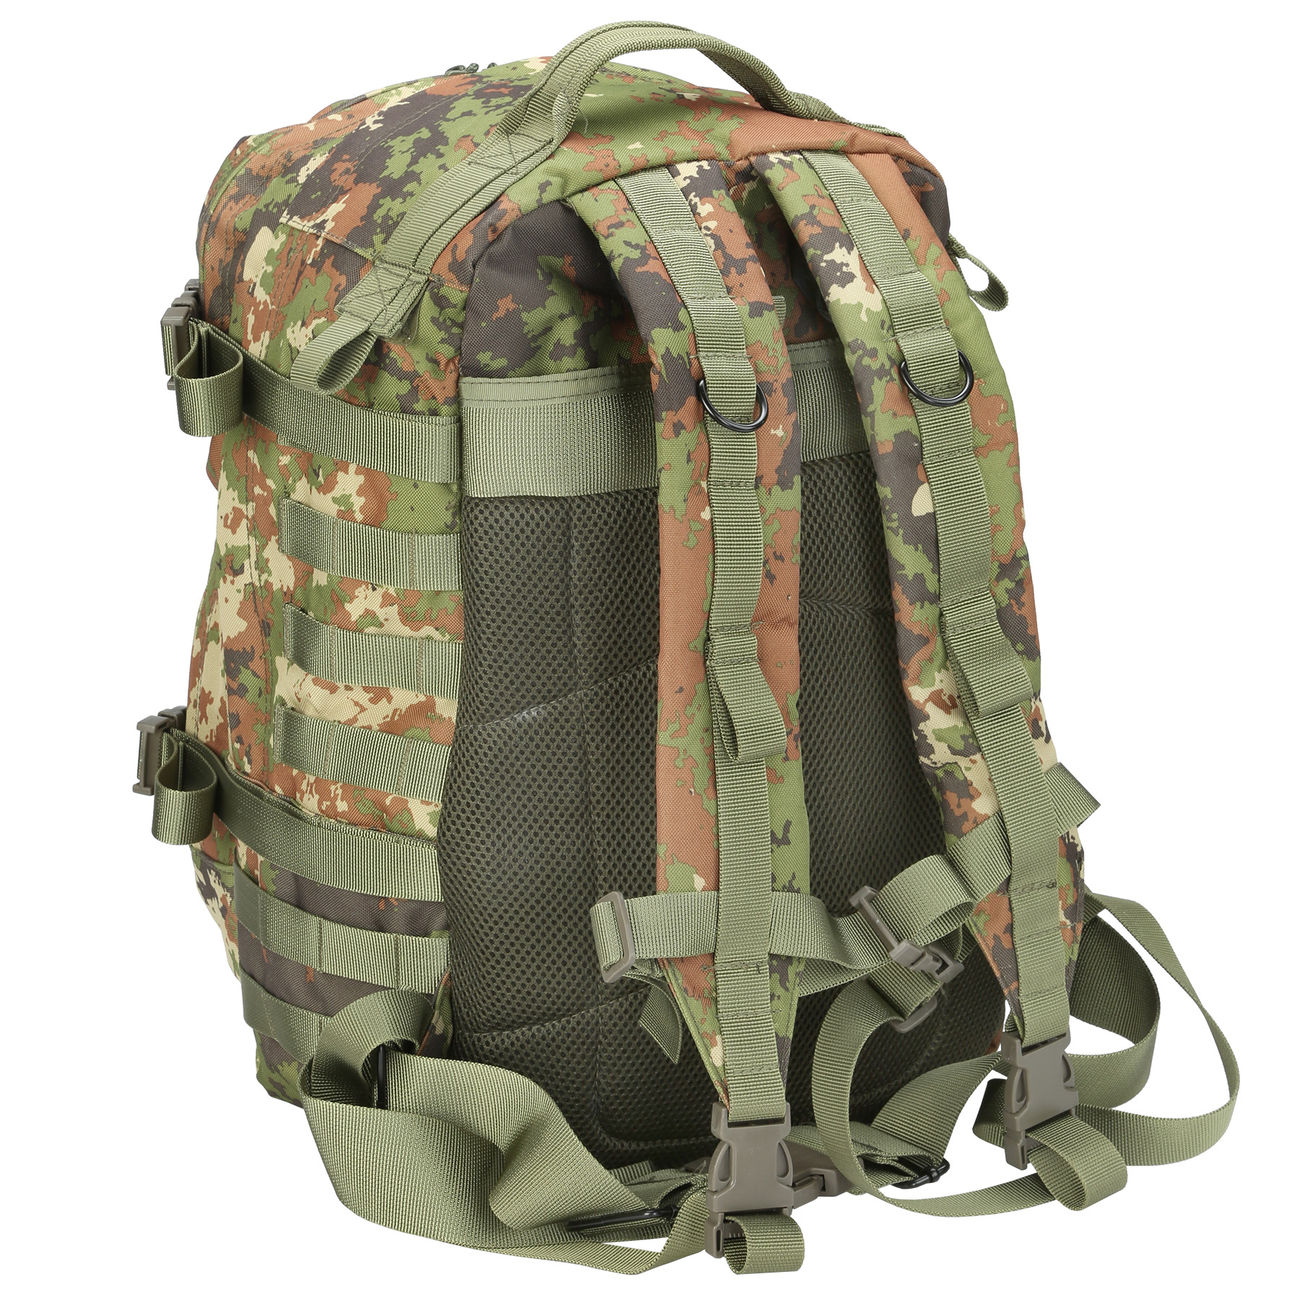 MFH Rucksack US Assault II vegetato 3